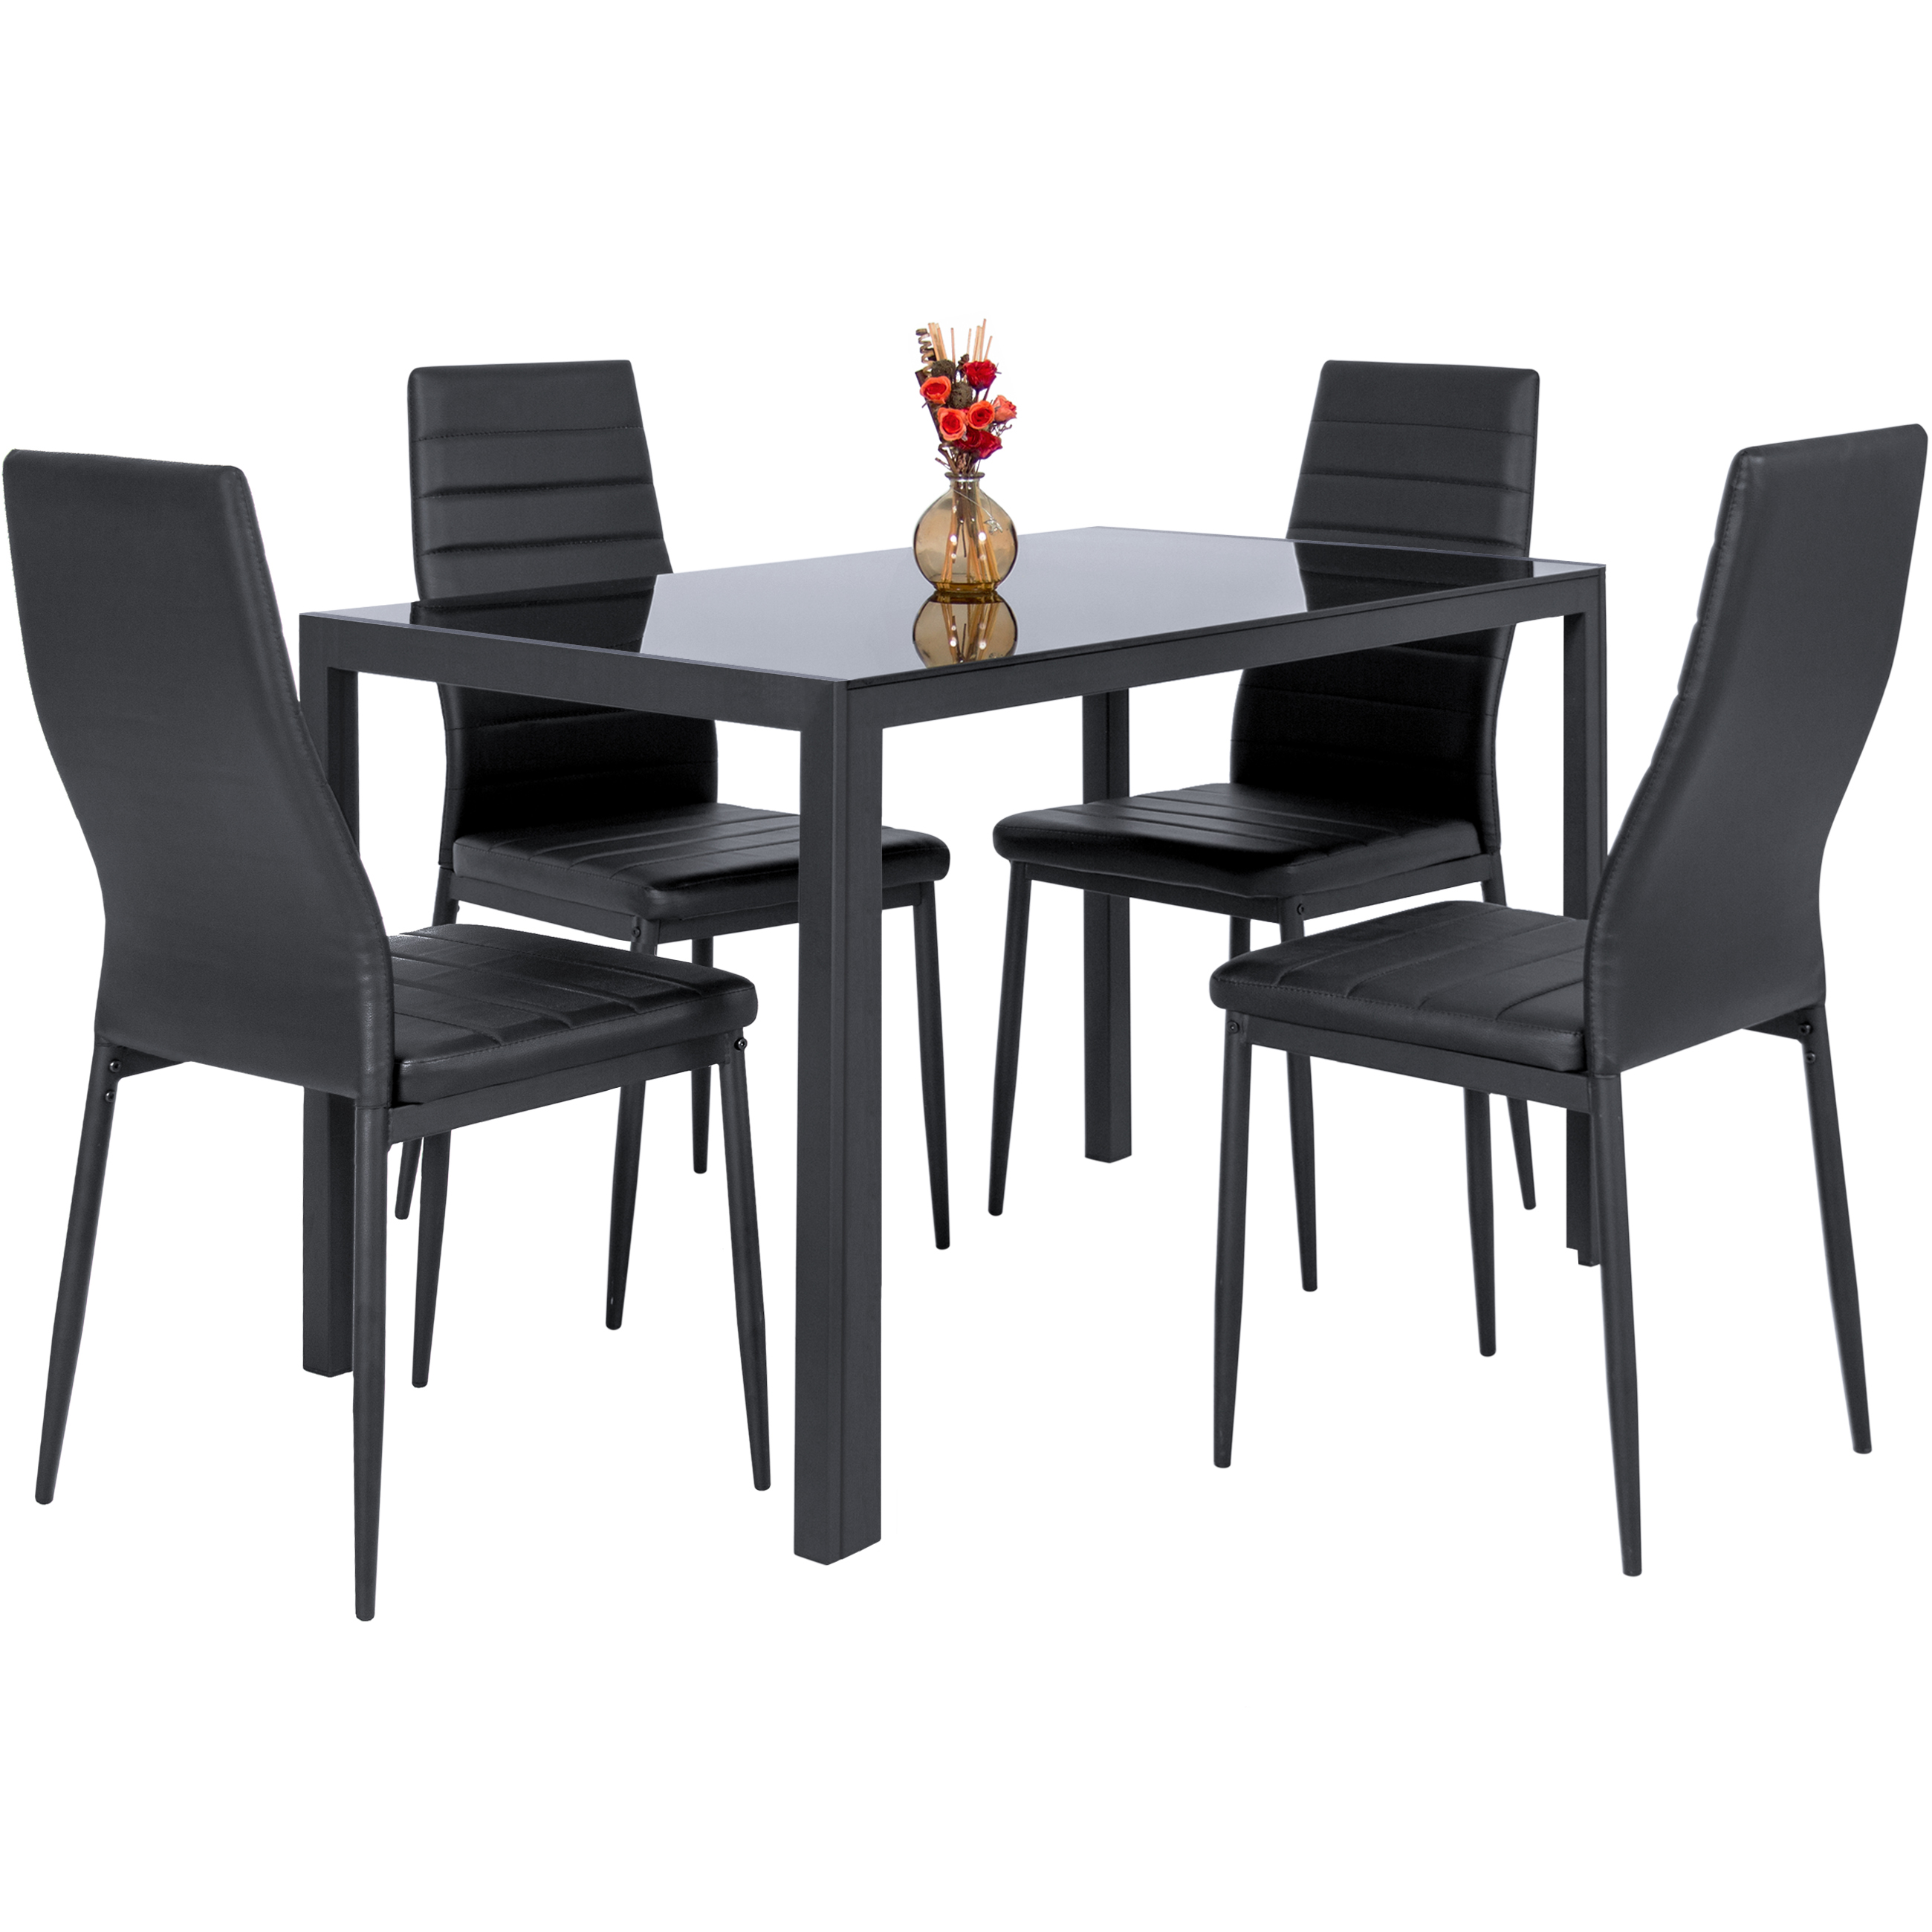 Best Choice Products 5 Piece Kitchen Dining Table Set W/ Glass Top And 4 Leather Chairs Dinette - Black